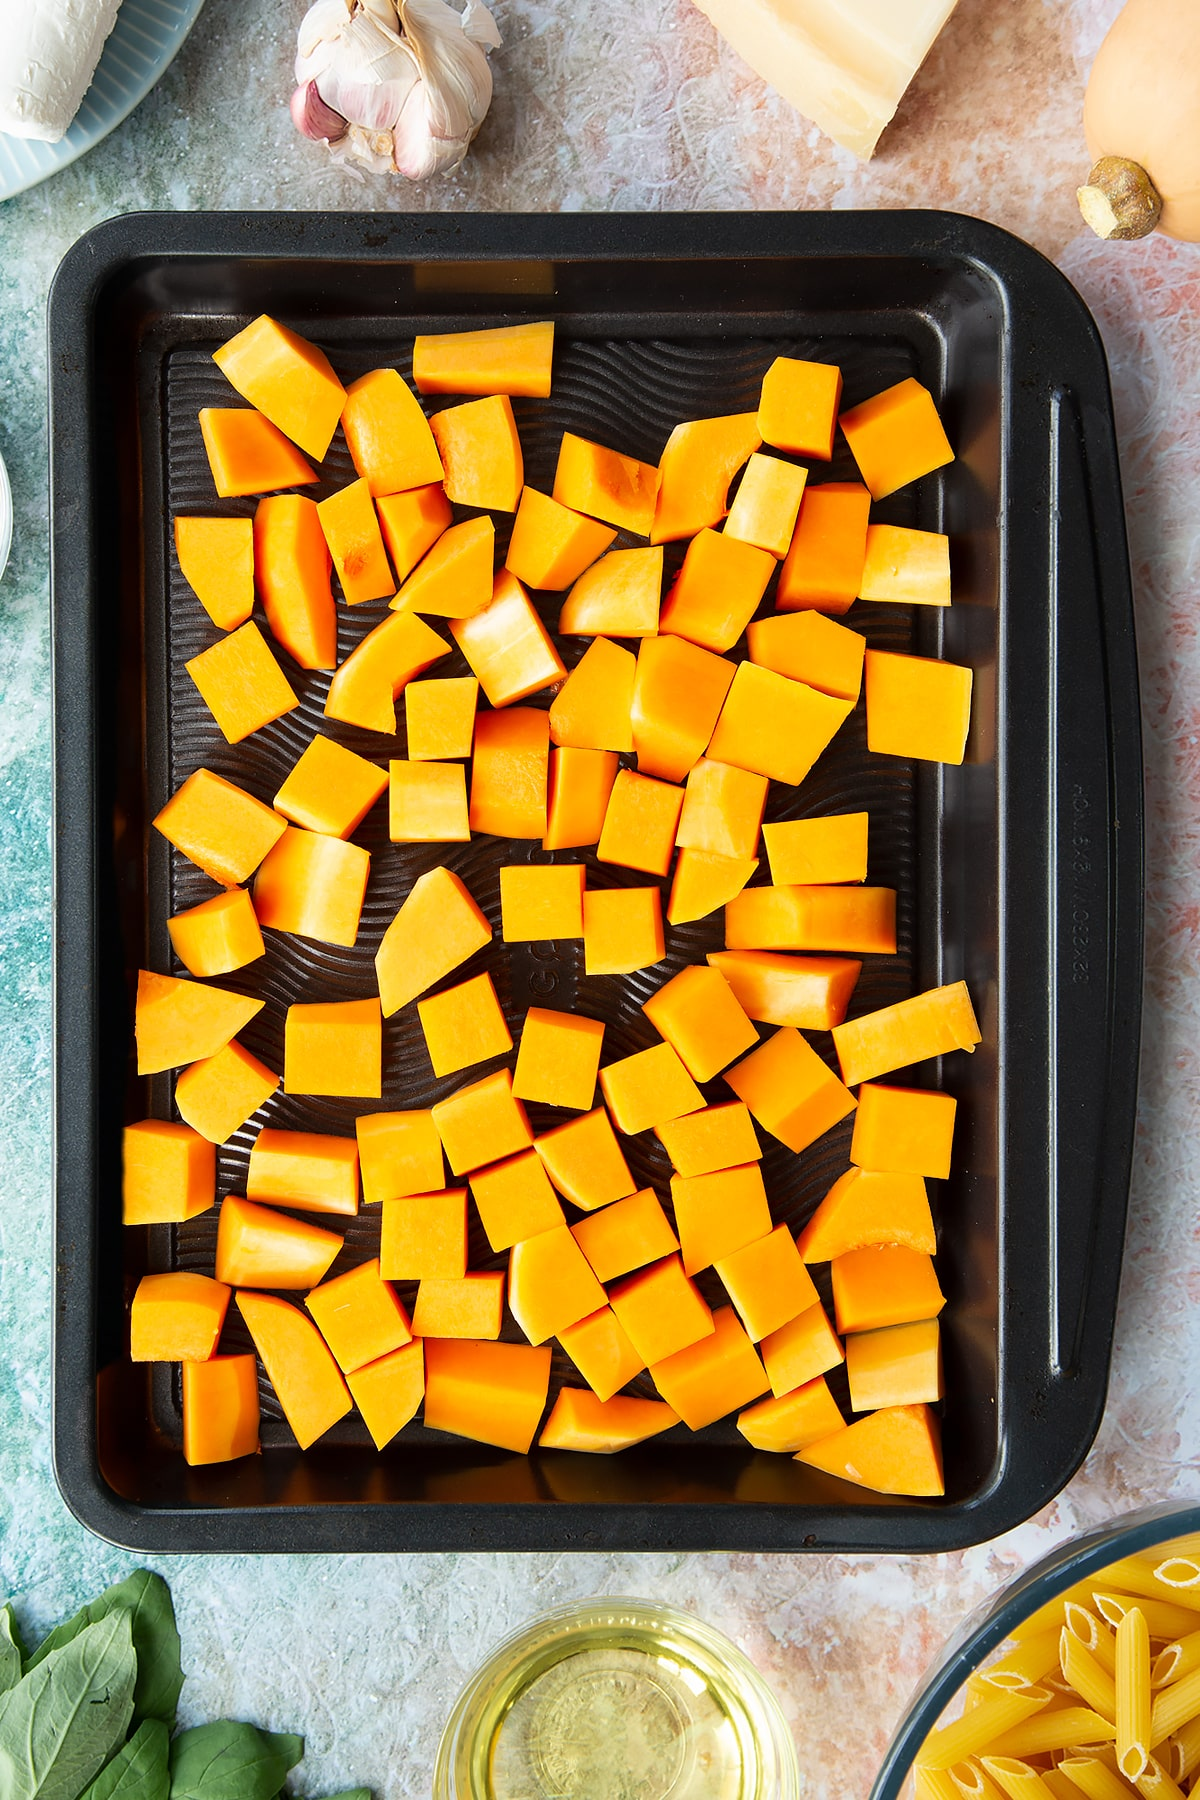 Chunks of butternut squash on a black tray. Ingredients to make penne with butternut squash and goat cheese surround the tray.